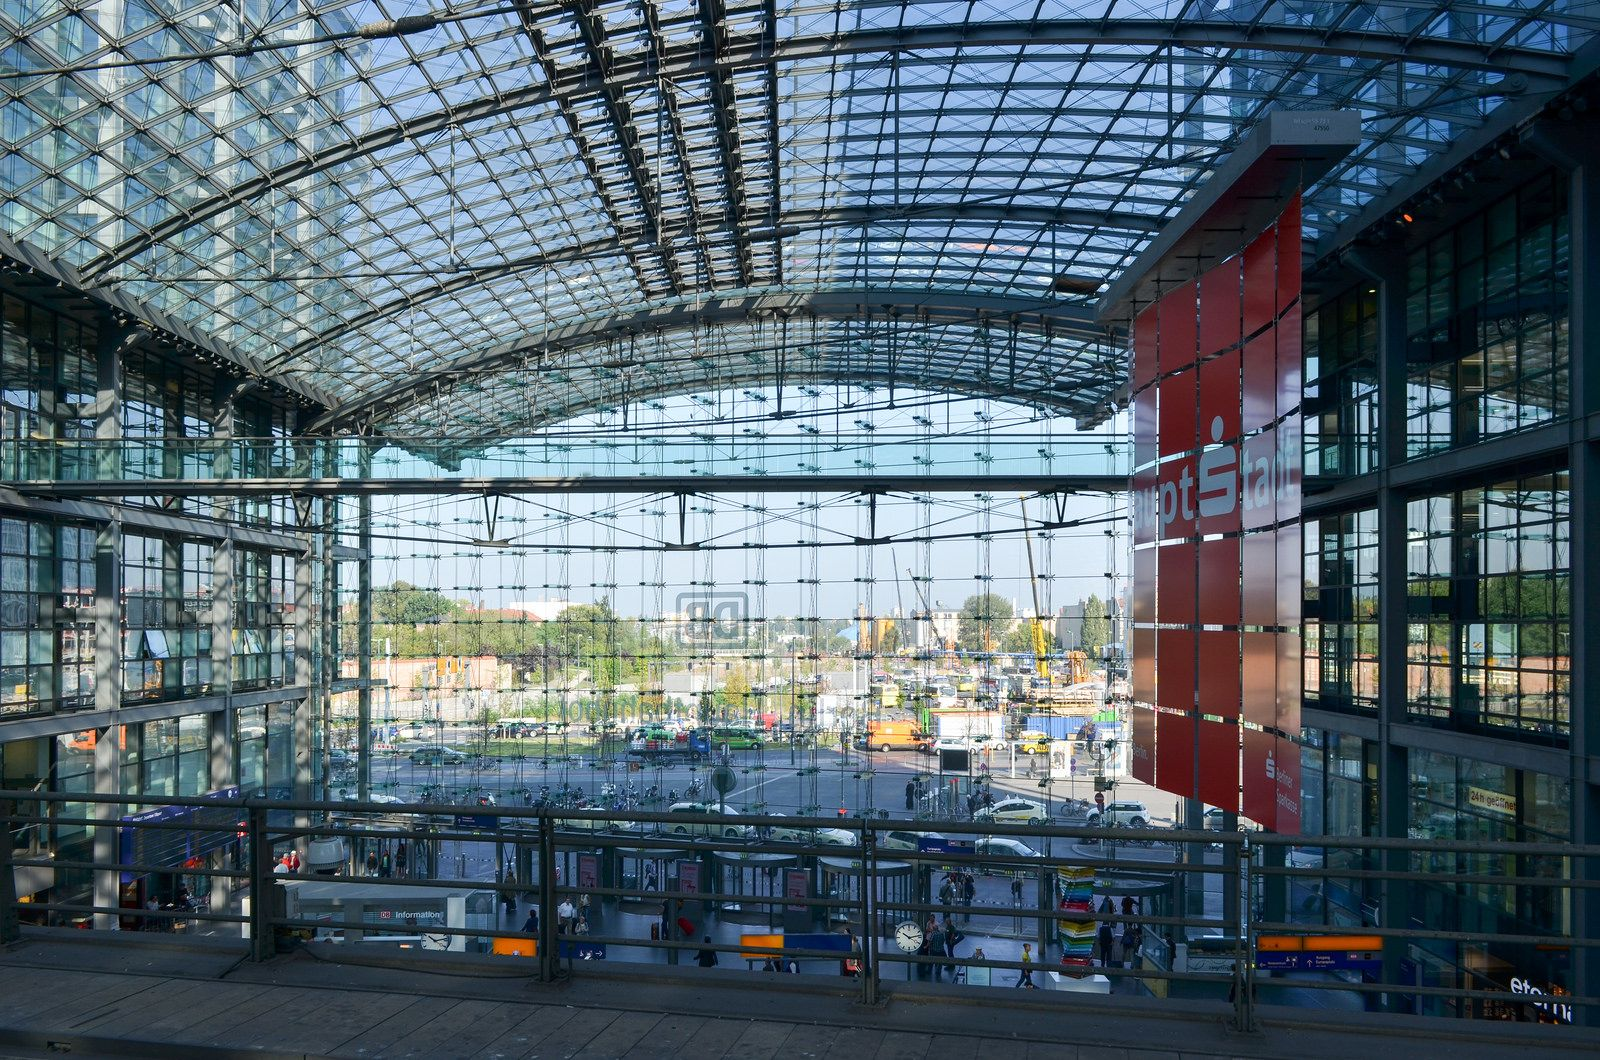 Berlin Central Station Canopy architecture, Garden